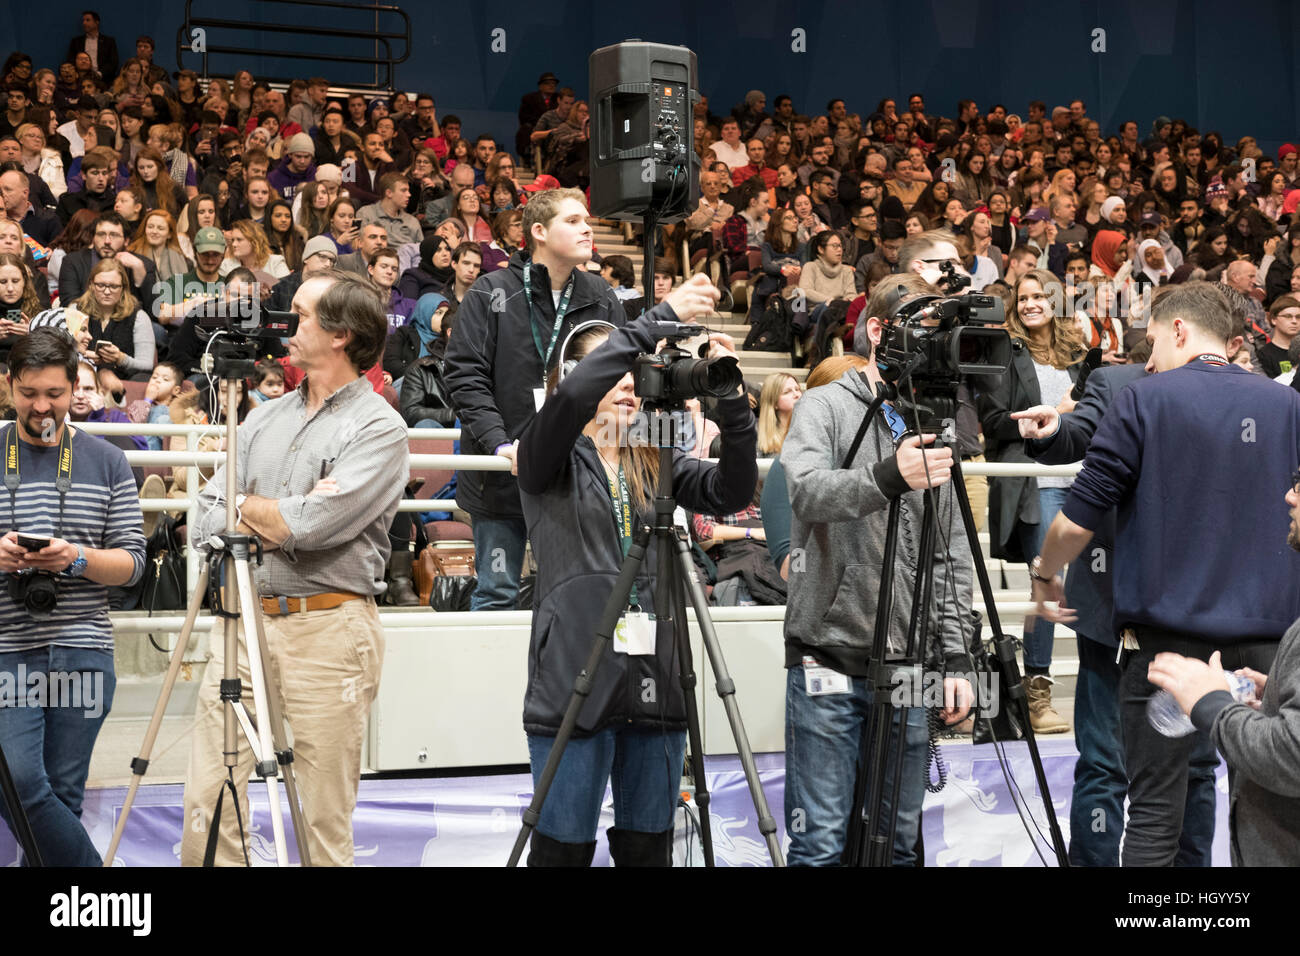 London, Ontario, Canada, 13th January, 2017. Members of the press wait for the Prime Minister of Canada, before - Stock Image